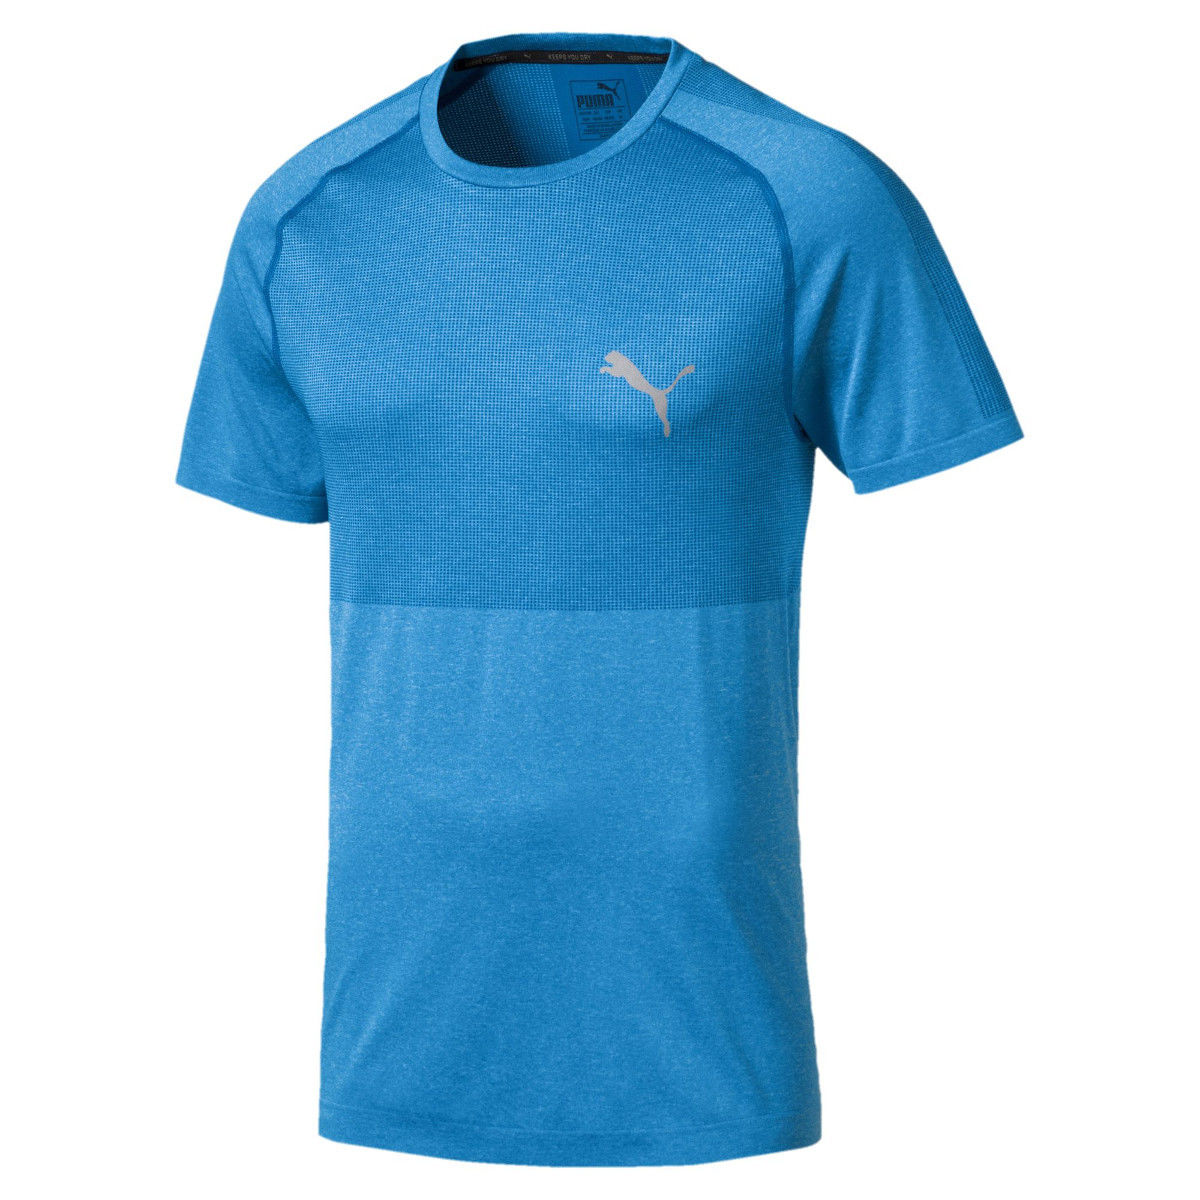 Puma Men's Evoknit Basic Tee - Blue, L